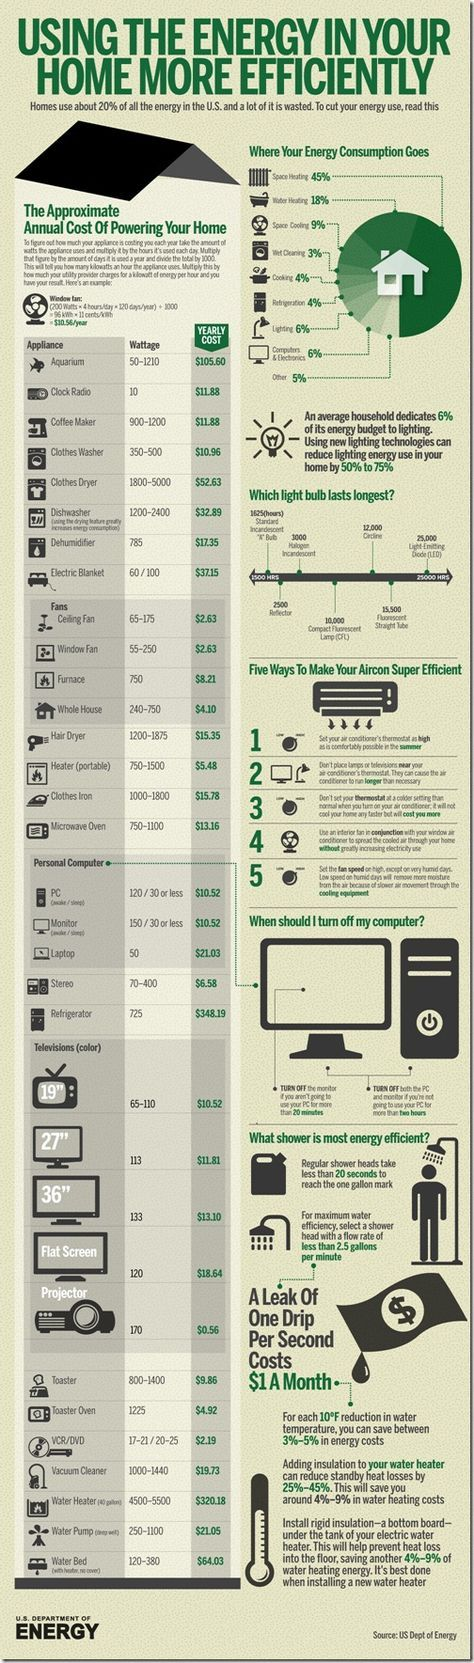 Where Your Energy Consumption Goes Infographic & 10 Tips to Save Energy